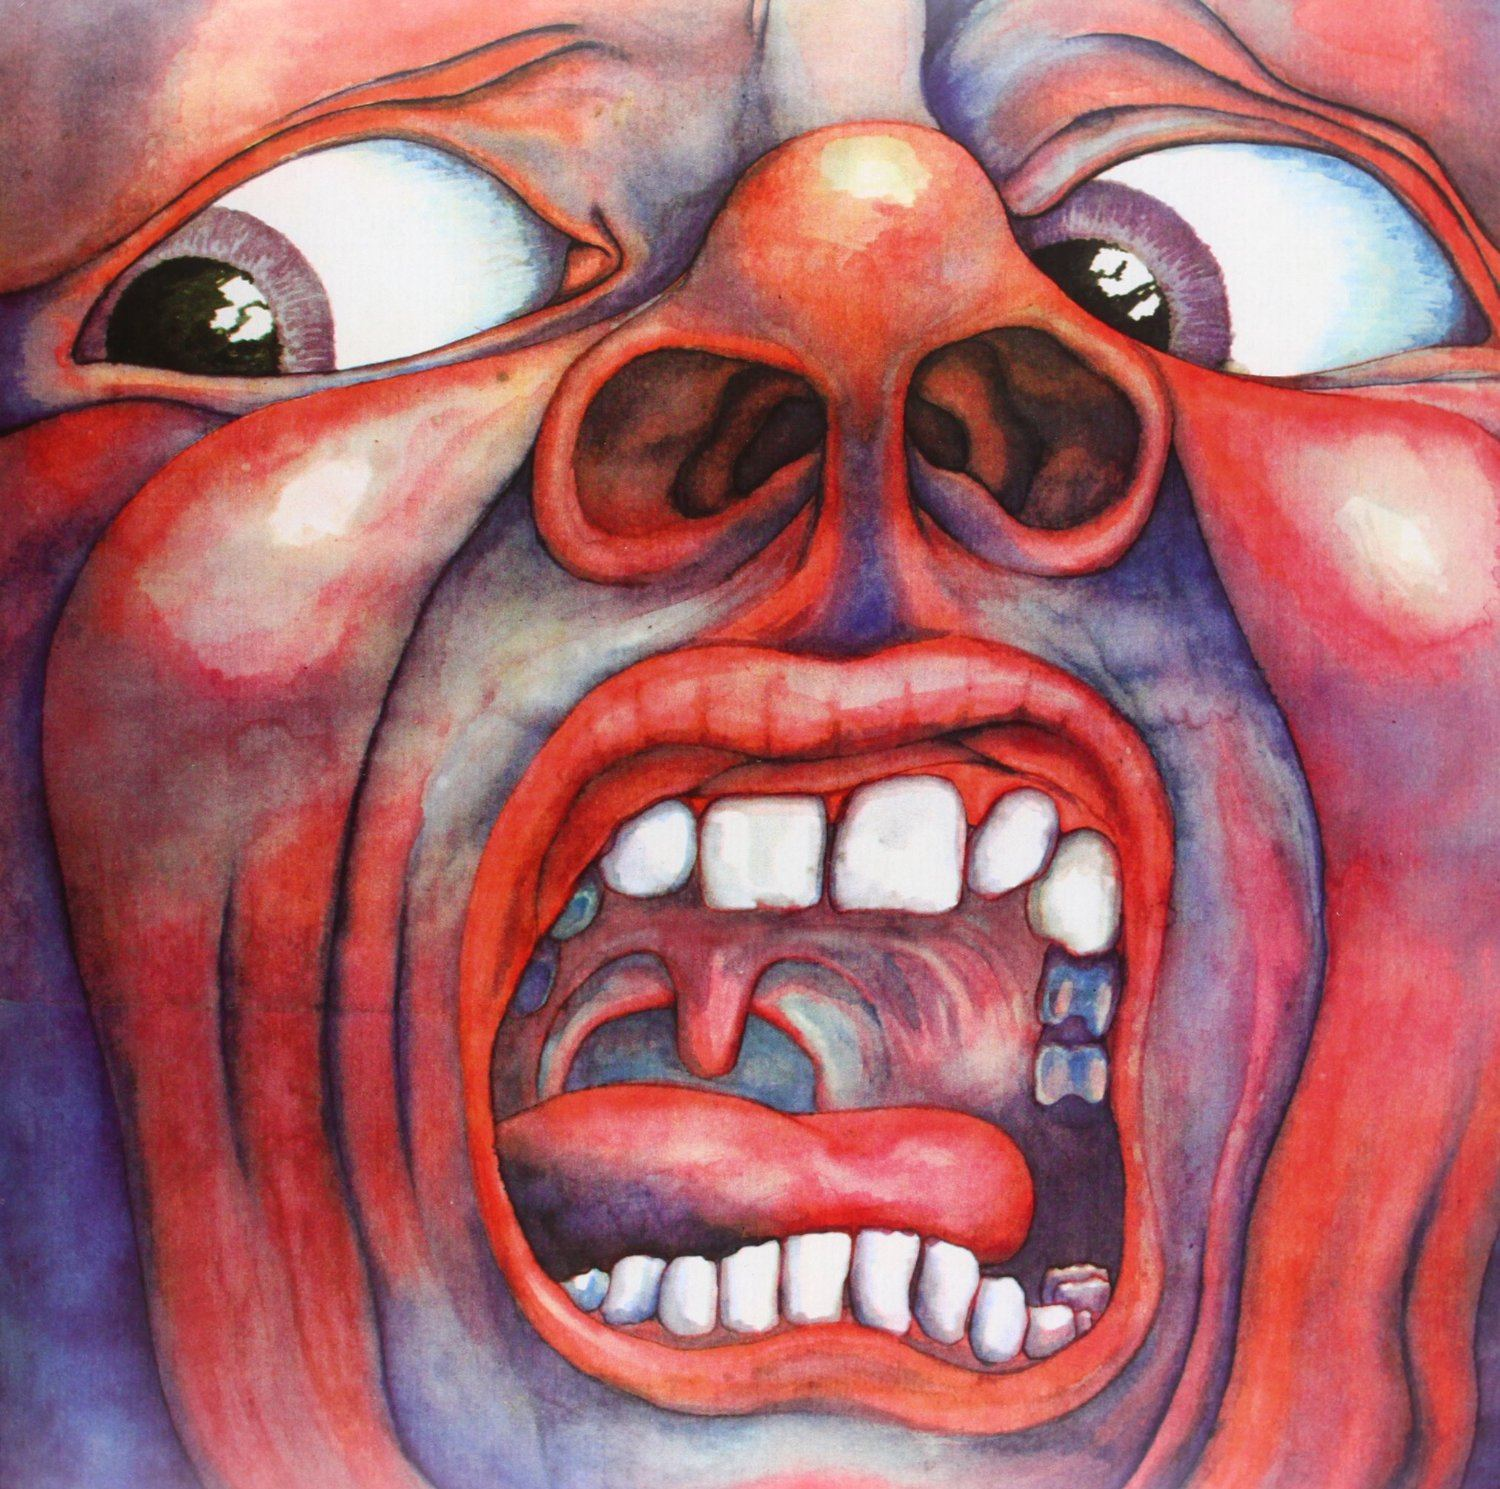 In The Court Of The Crimson King beatit.tv